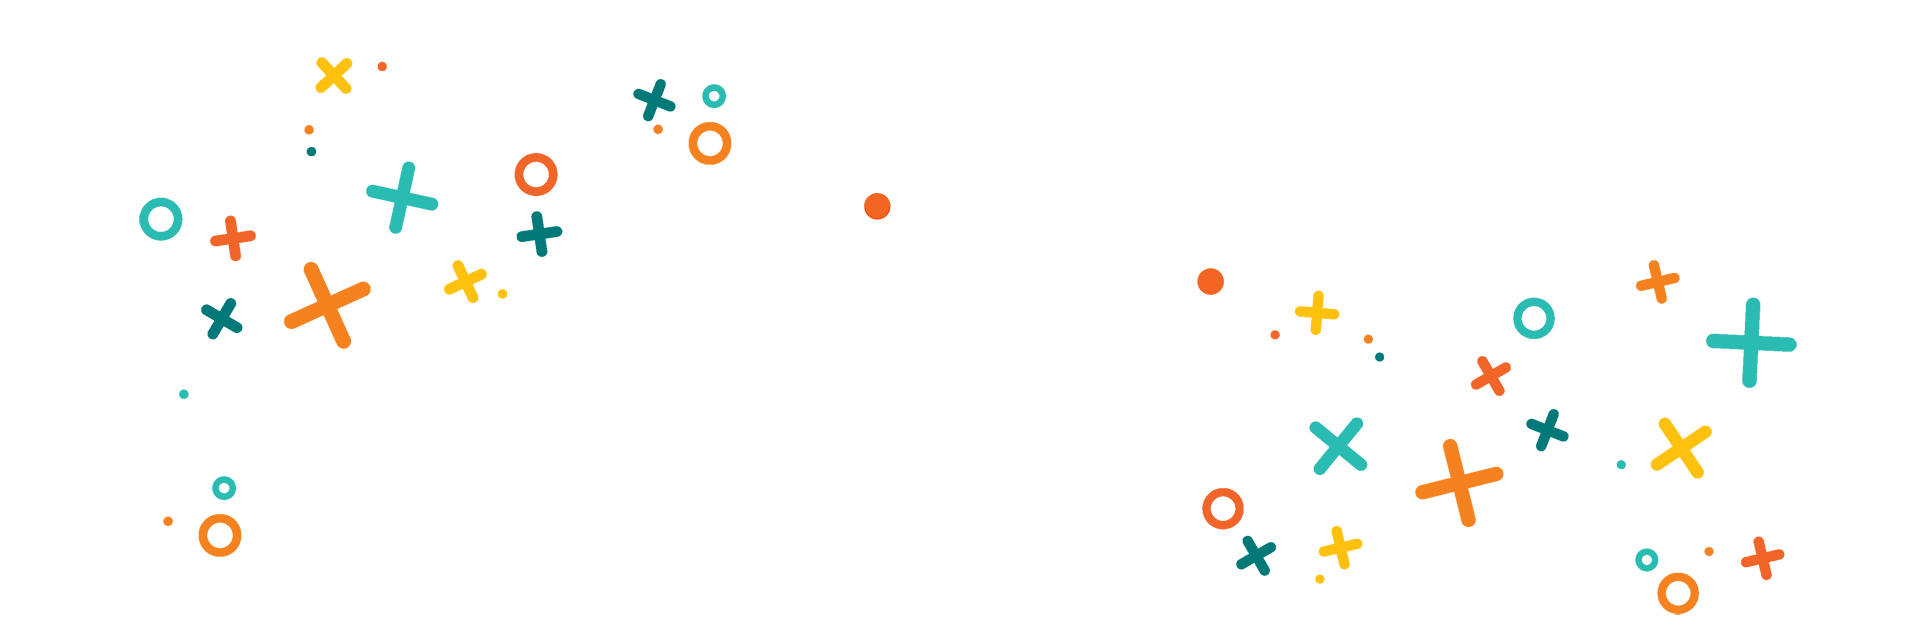 The logo for Aruma